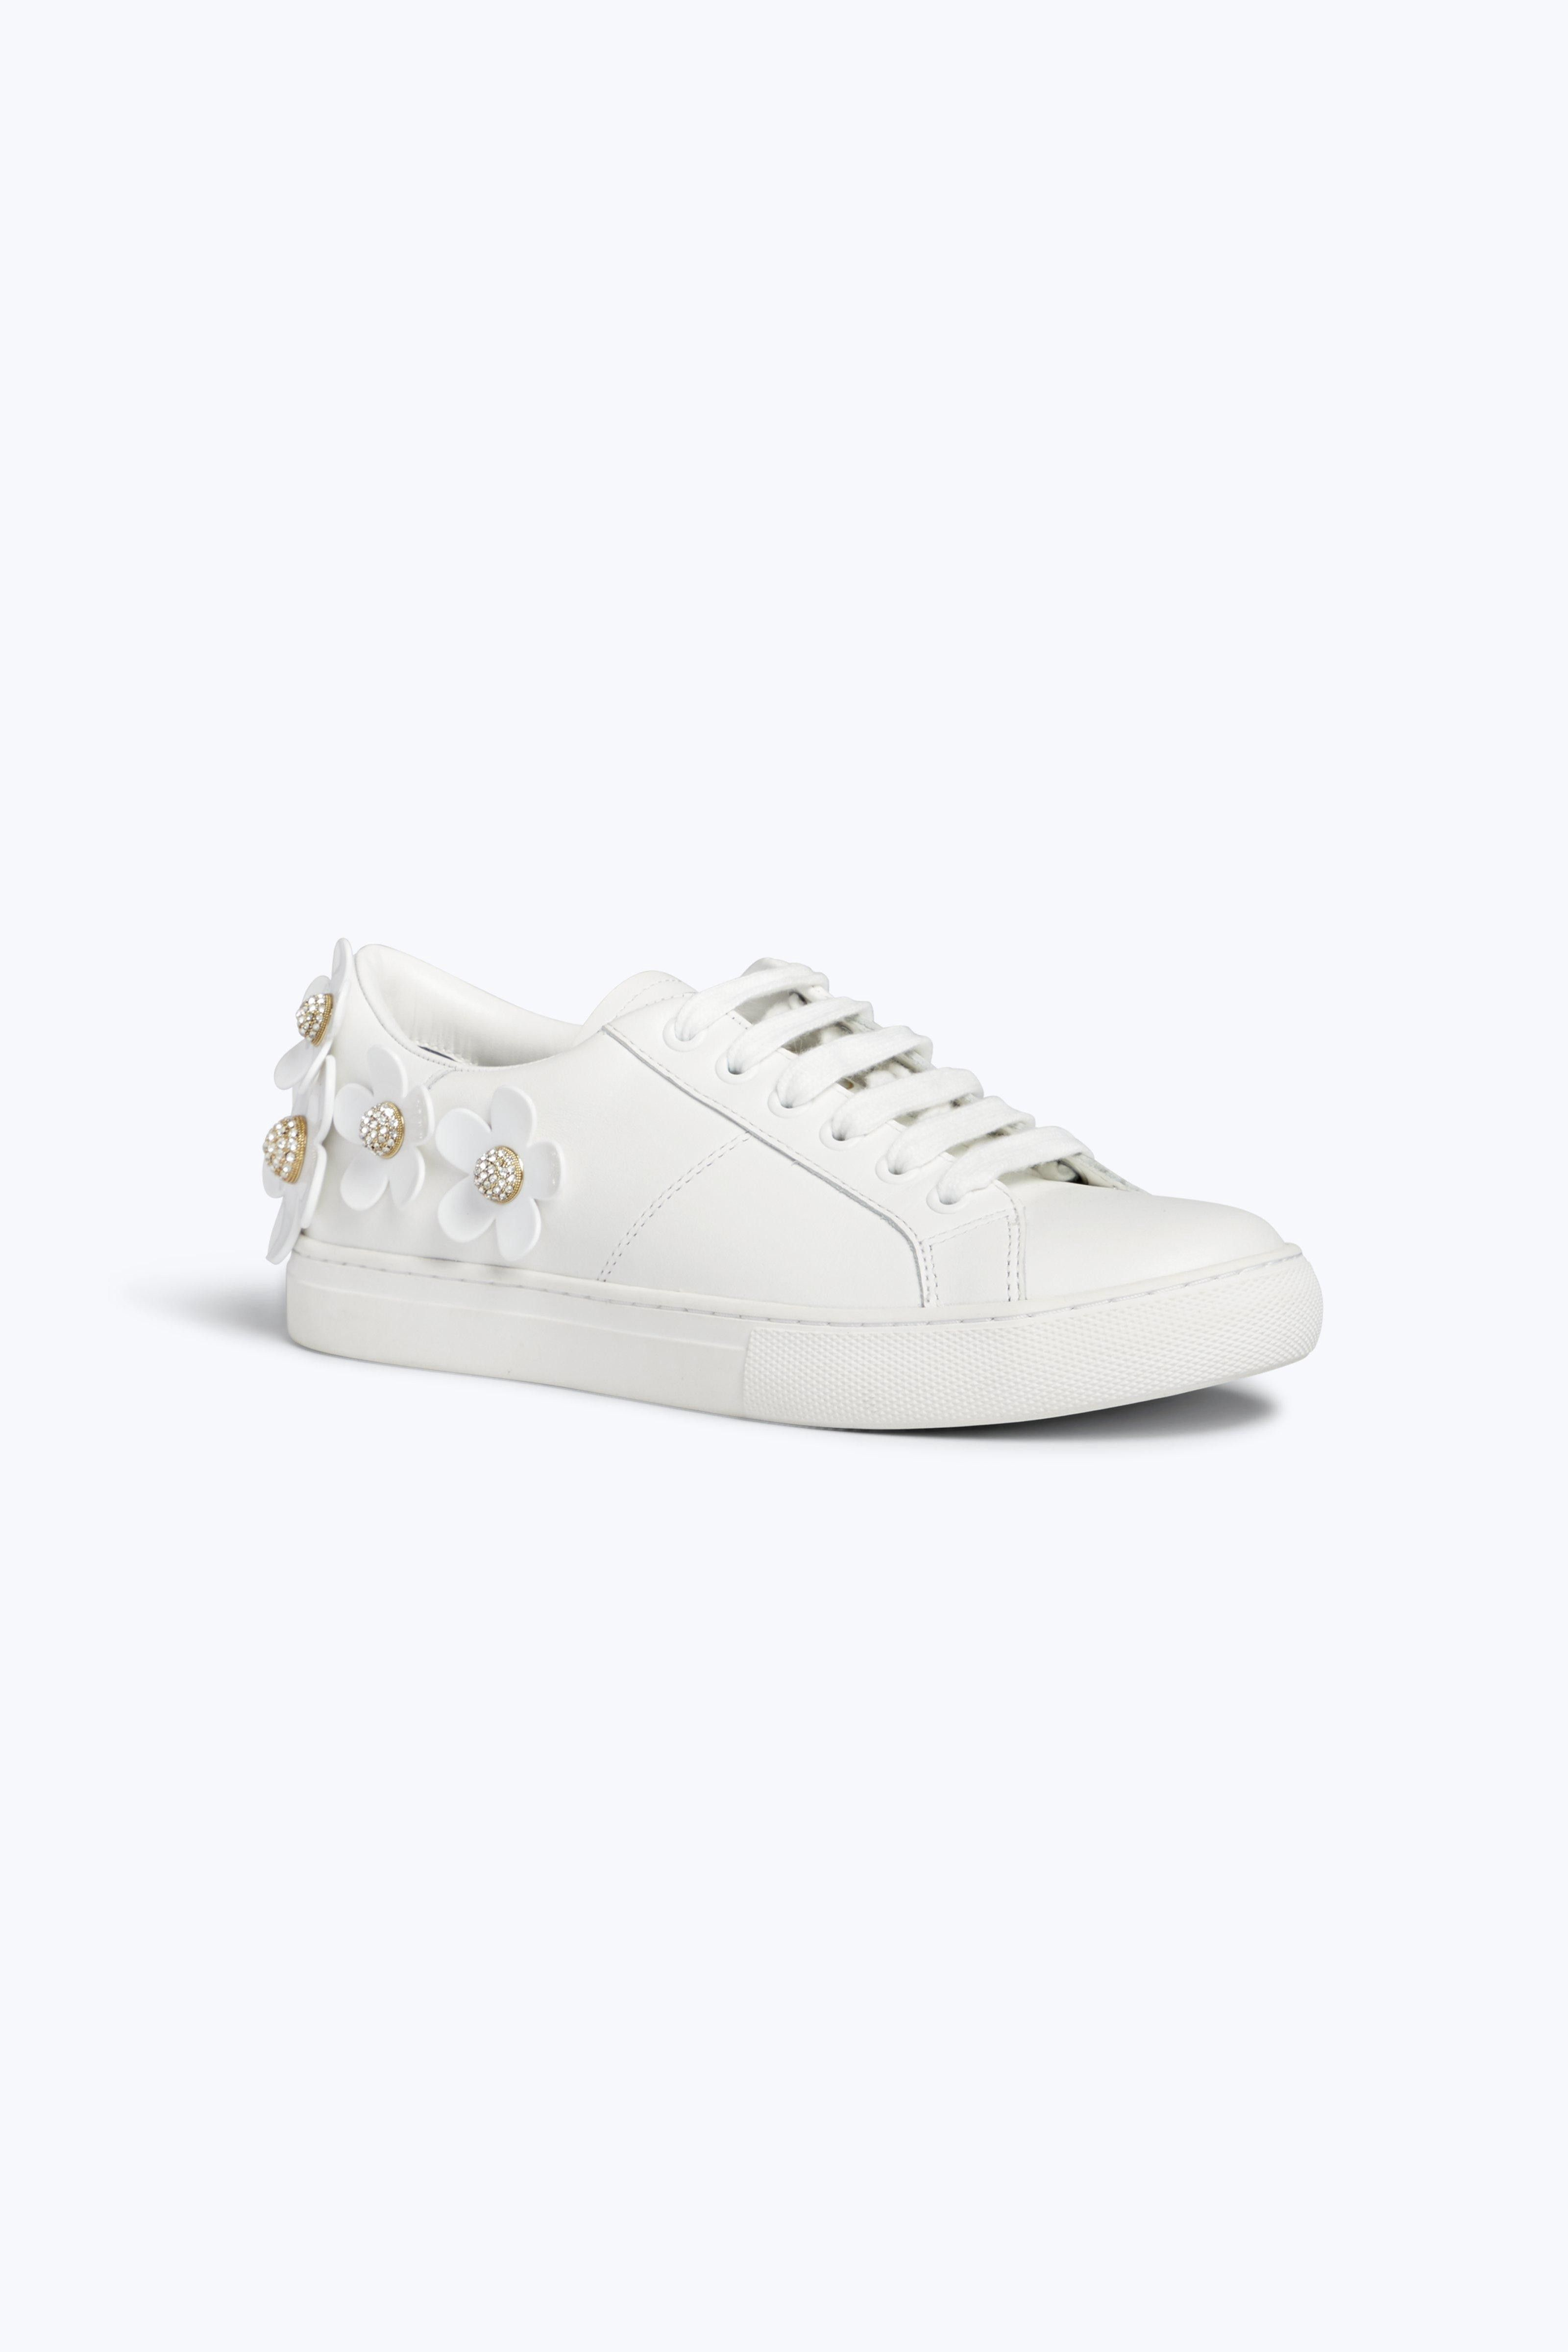 Marc Jacobs Daisy Sneakermarcjacobsshoes Marc Daisy Marc Jacobs Sneakermarcjacobsshoes TFK1Jlc